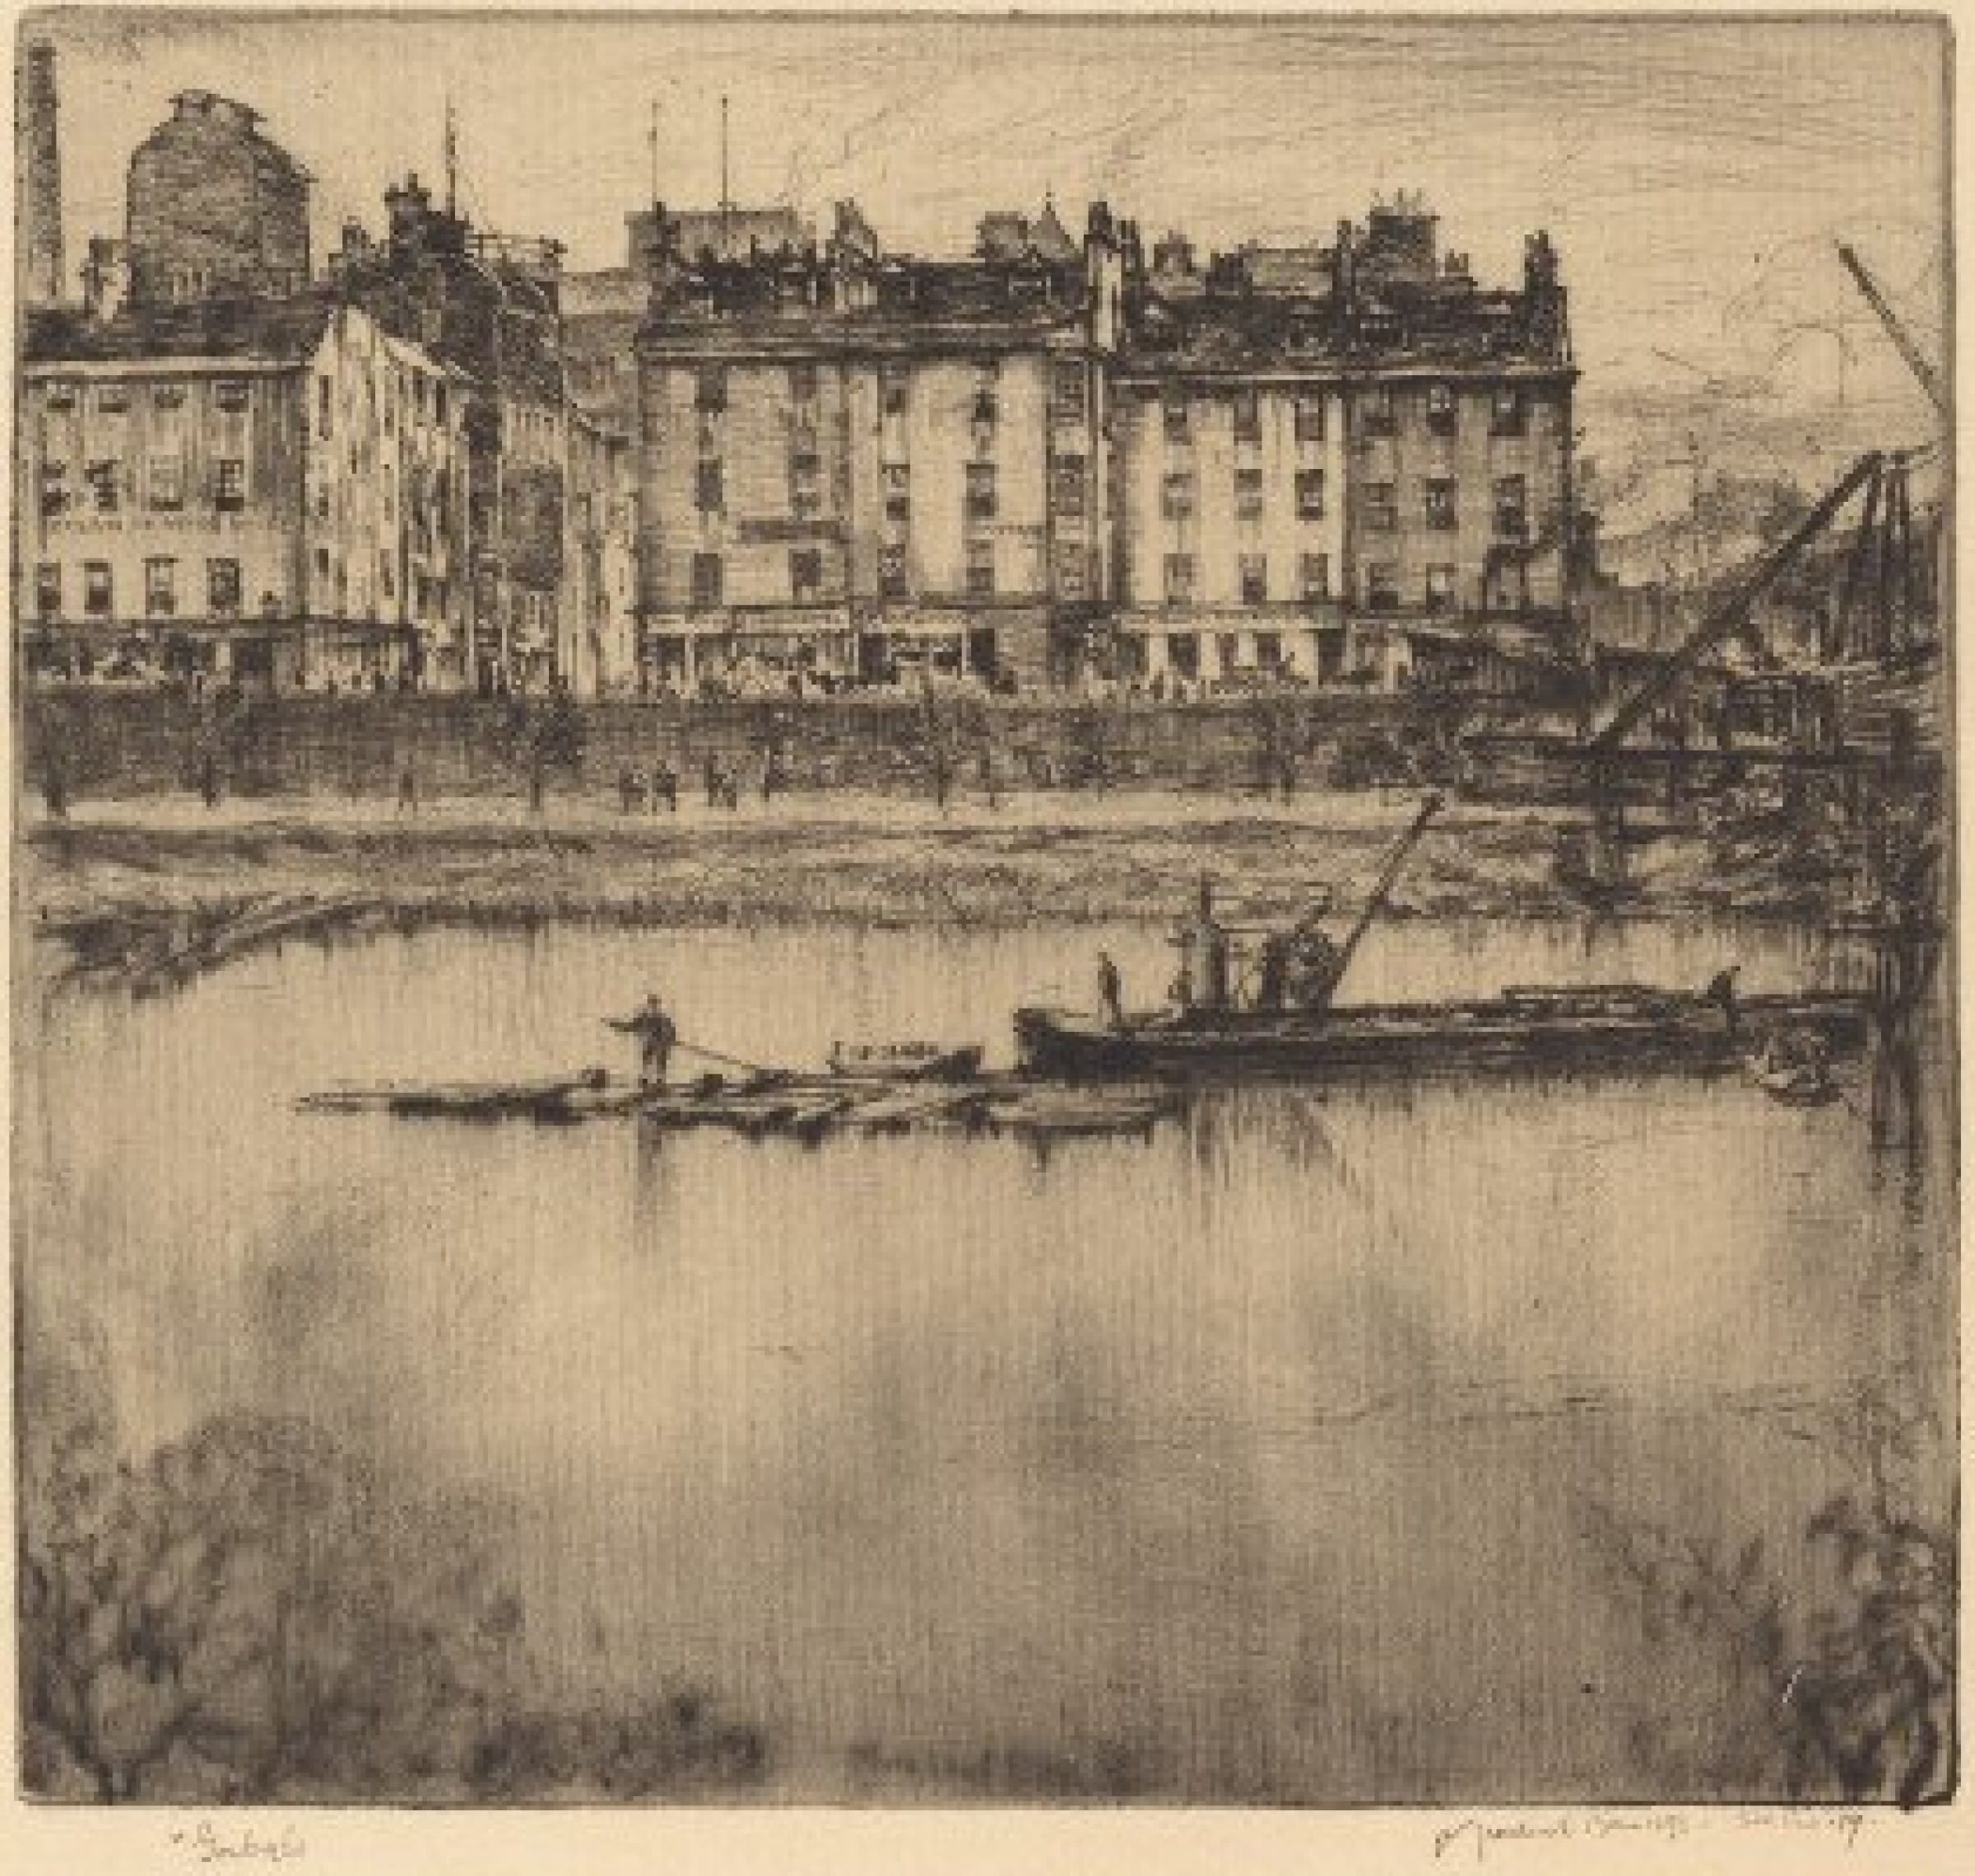 Etched in the memory (Gorbals, 1907, by Muirhead Bone)